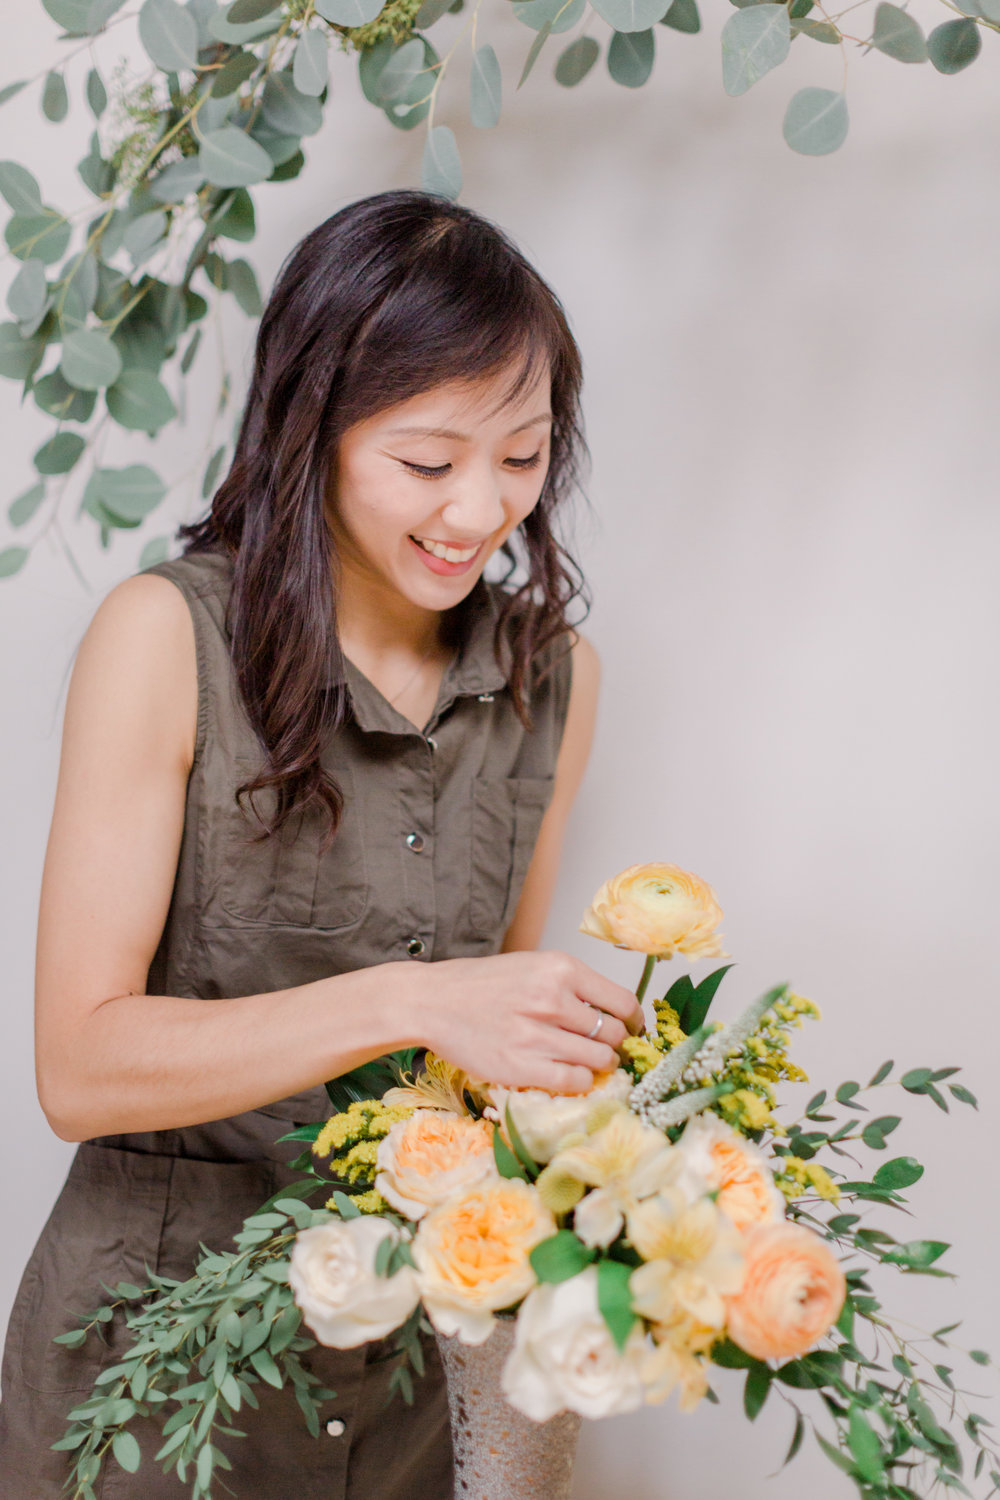 Montreal Wedding Florist Decorator Stationer 125 Caryn Lim.jpg